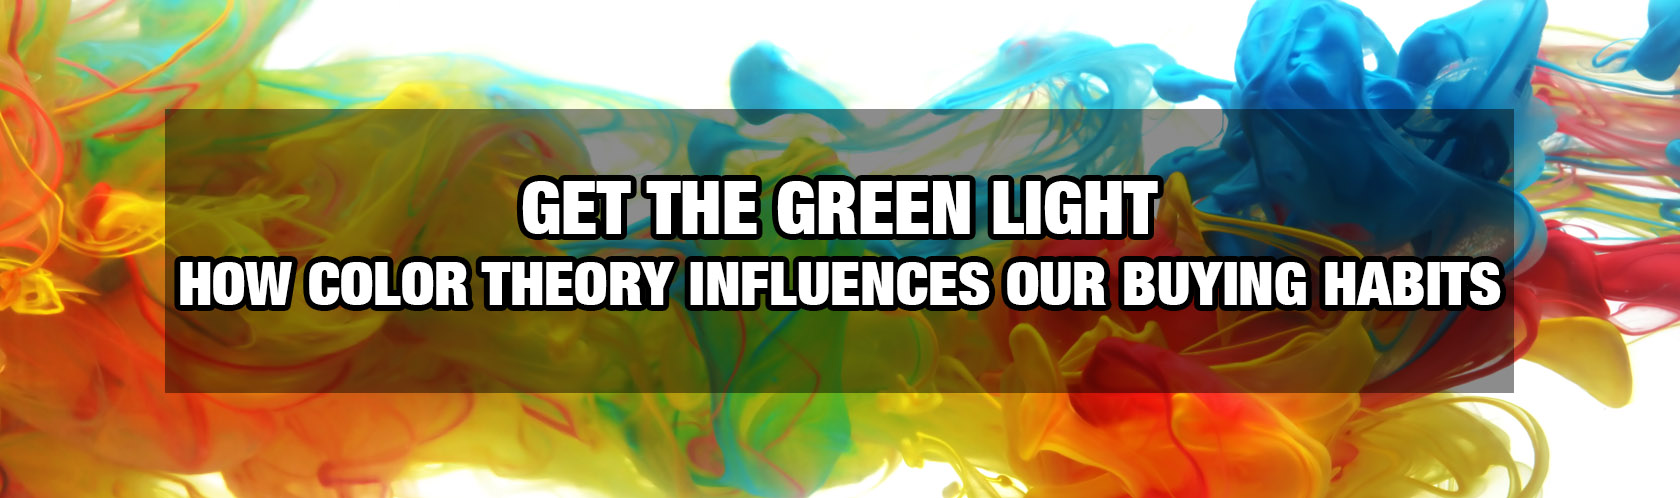 Get The Green Light - How Color Theory Influences Our Buying Habits